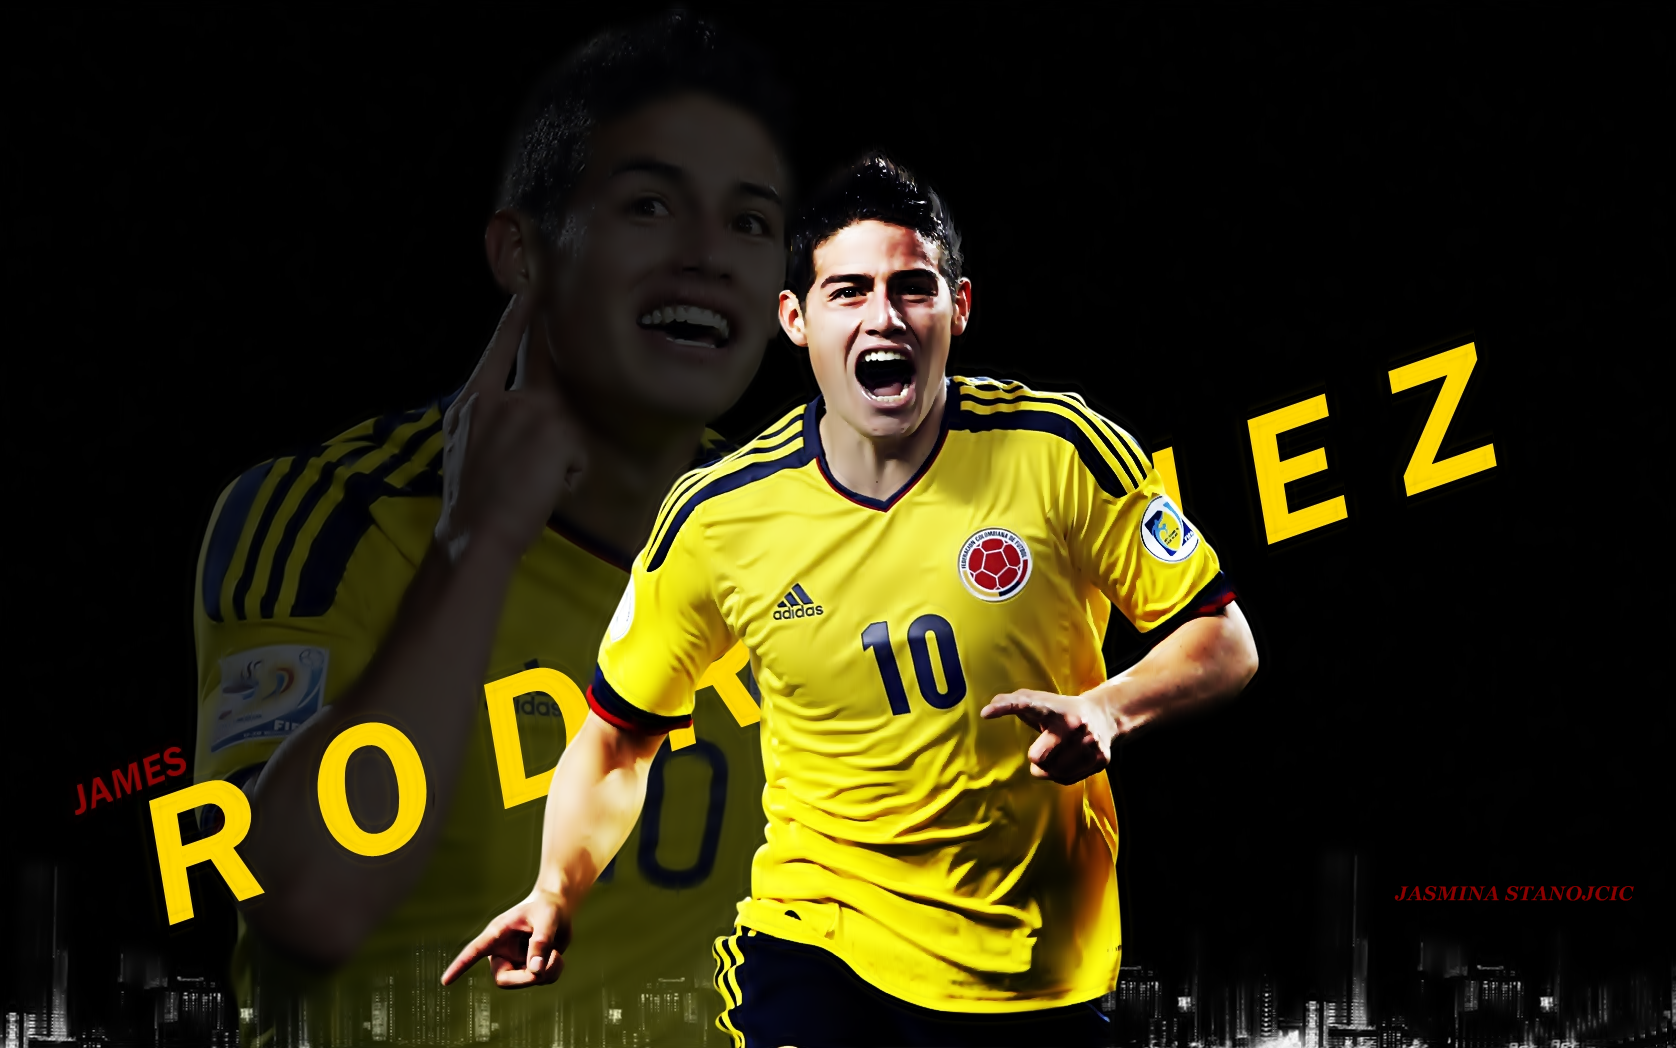 James Rodriguez Colombia Football Team Bae Pinterest